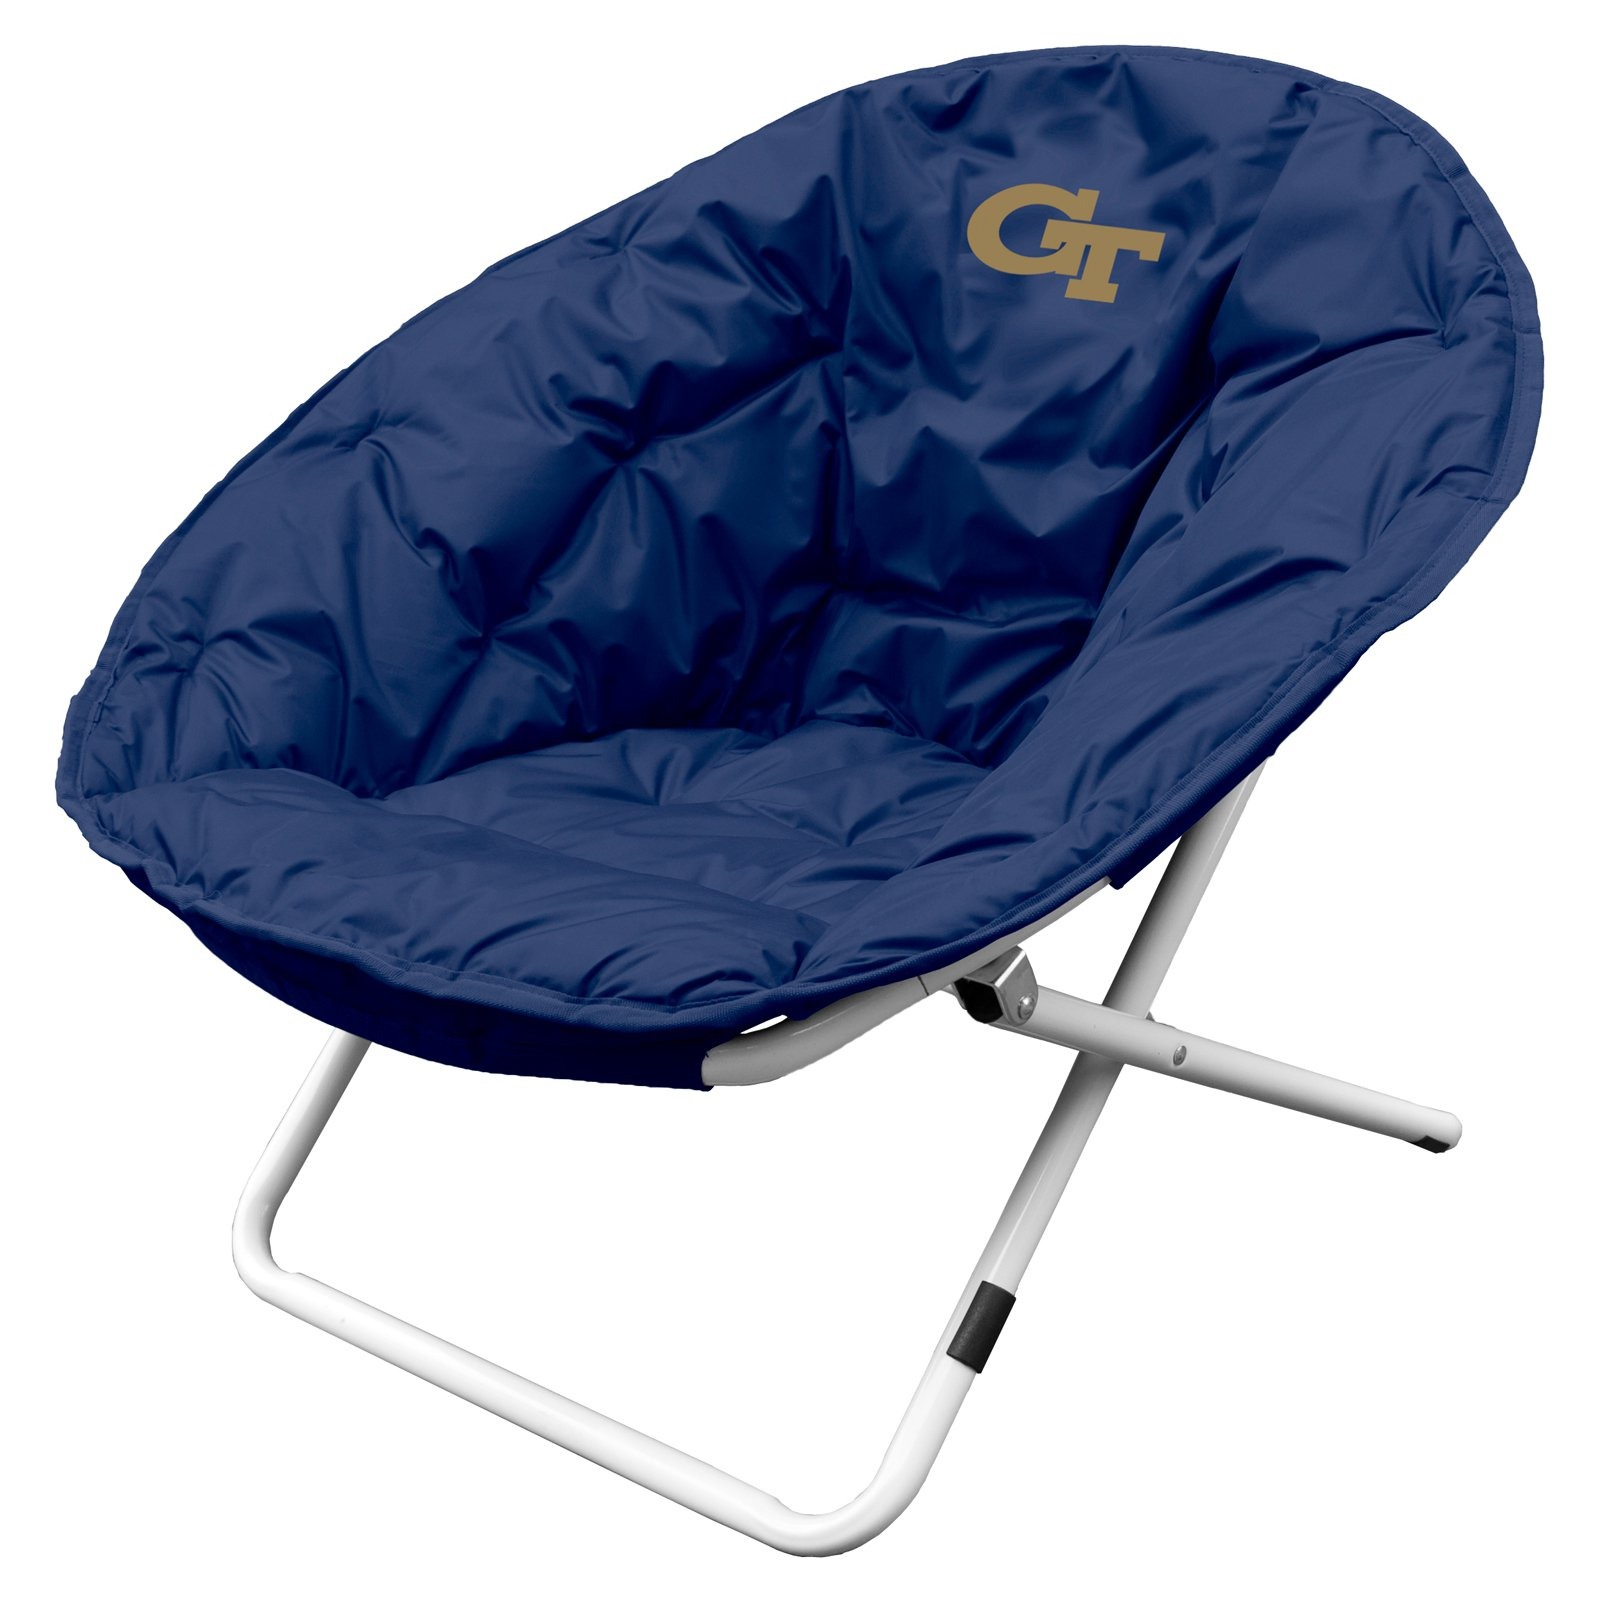 Logo Chairs Collegiate Sphere Chair - Georgia Tech